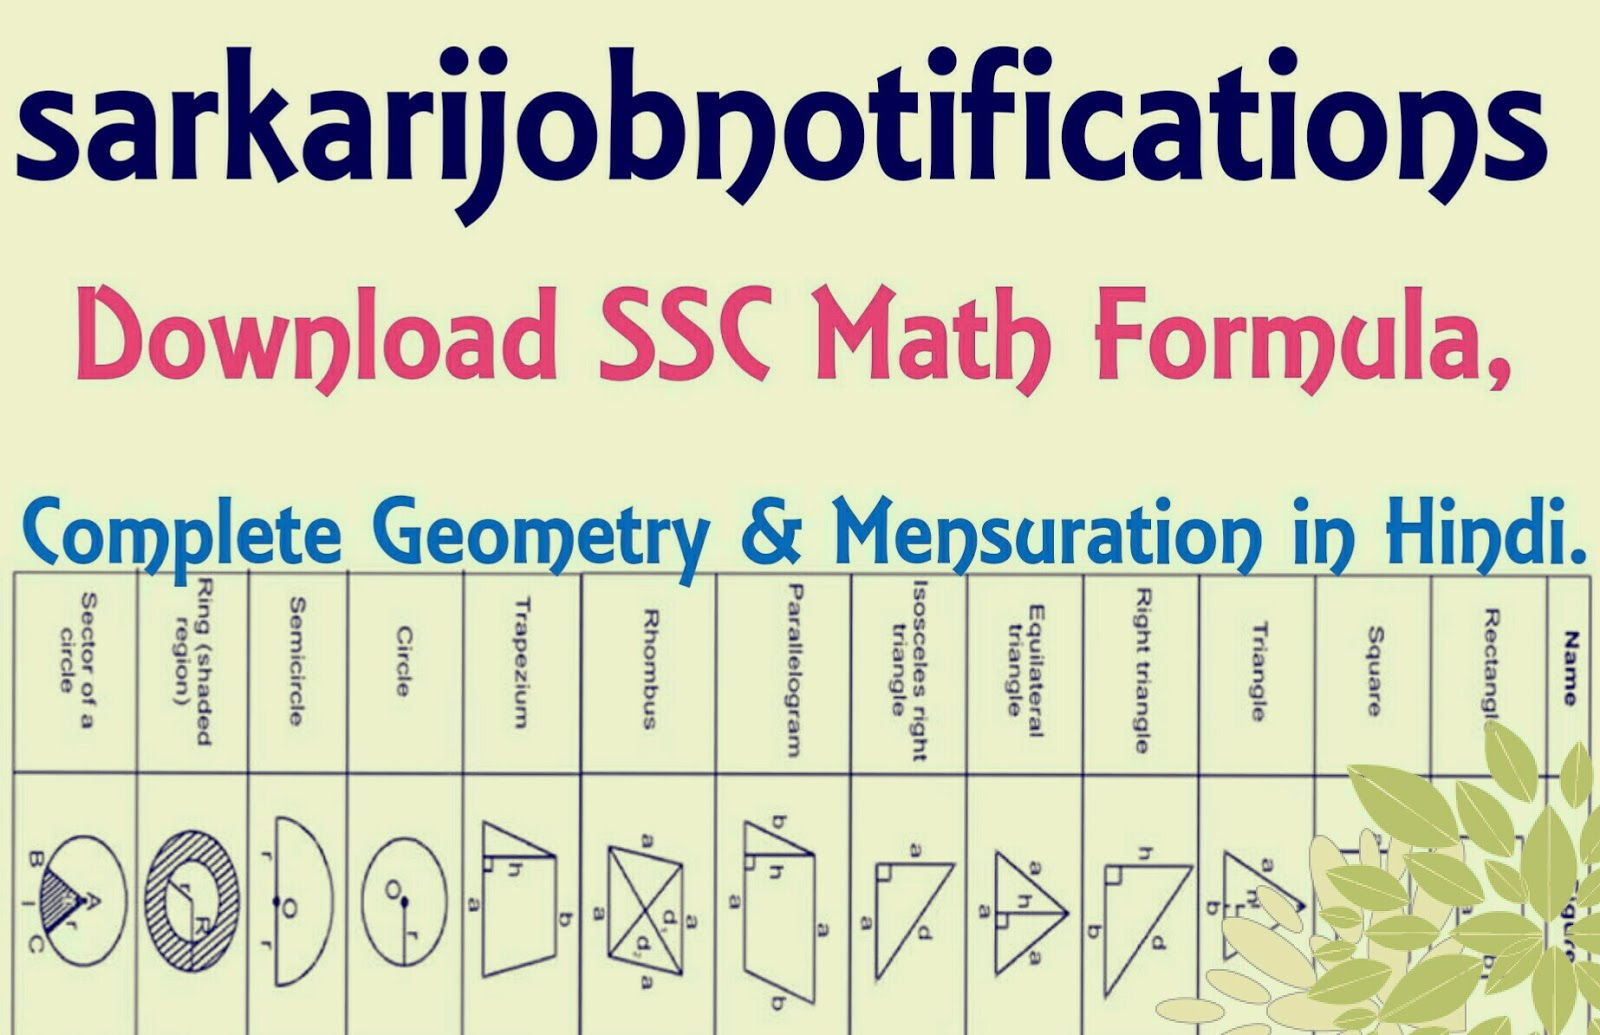 Download SSC Math Formula, Complete Geometry & Mensuration